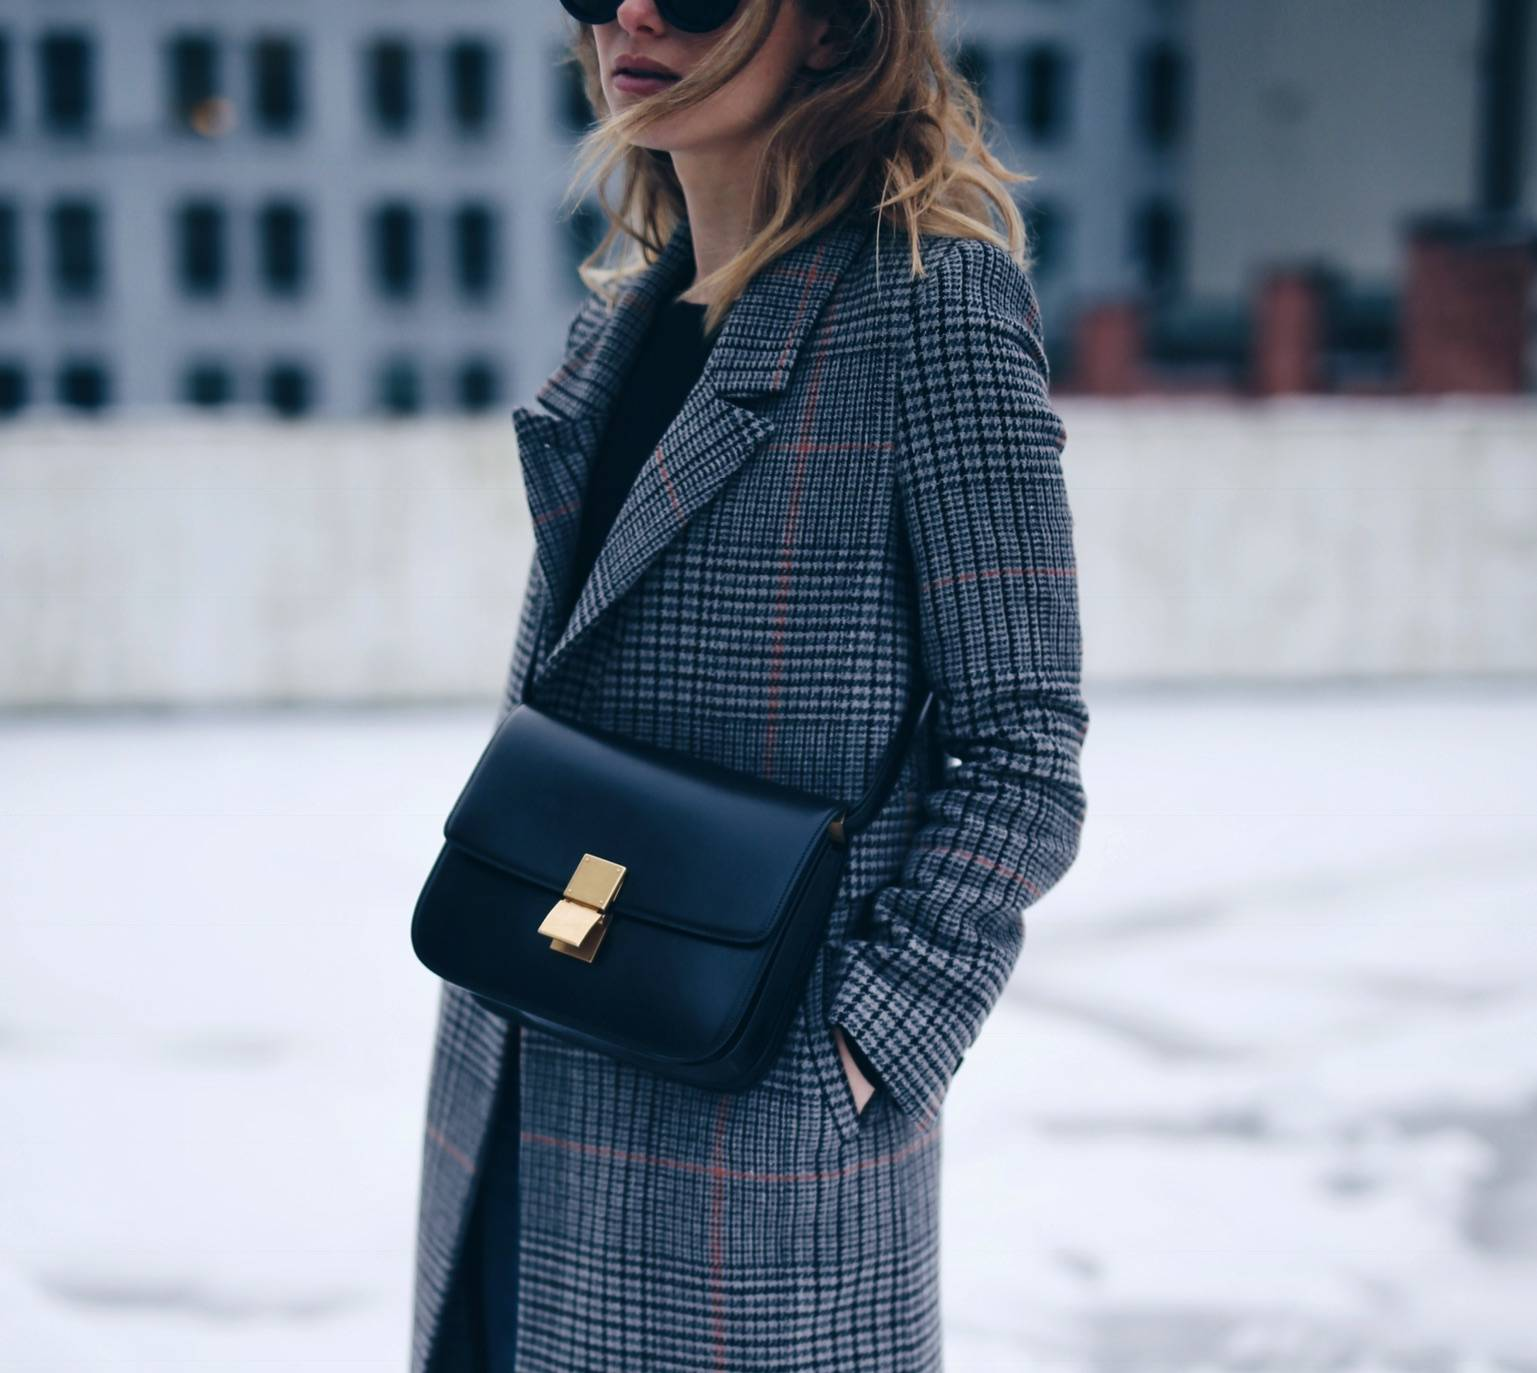 fi-Style and beauty blogger Jill Lansky of The August Diaries shows winter chic style in H&M plaid coat with Celine black box bag copy